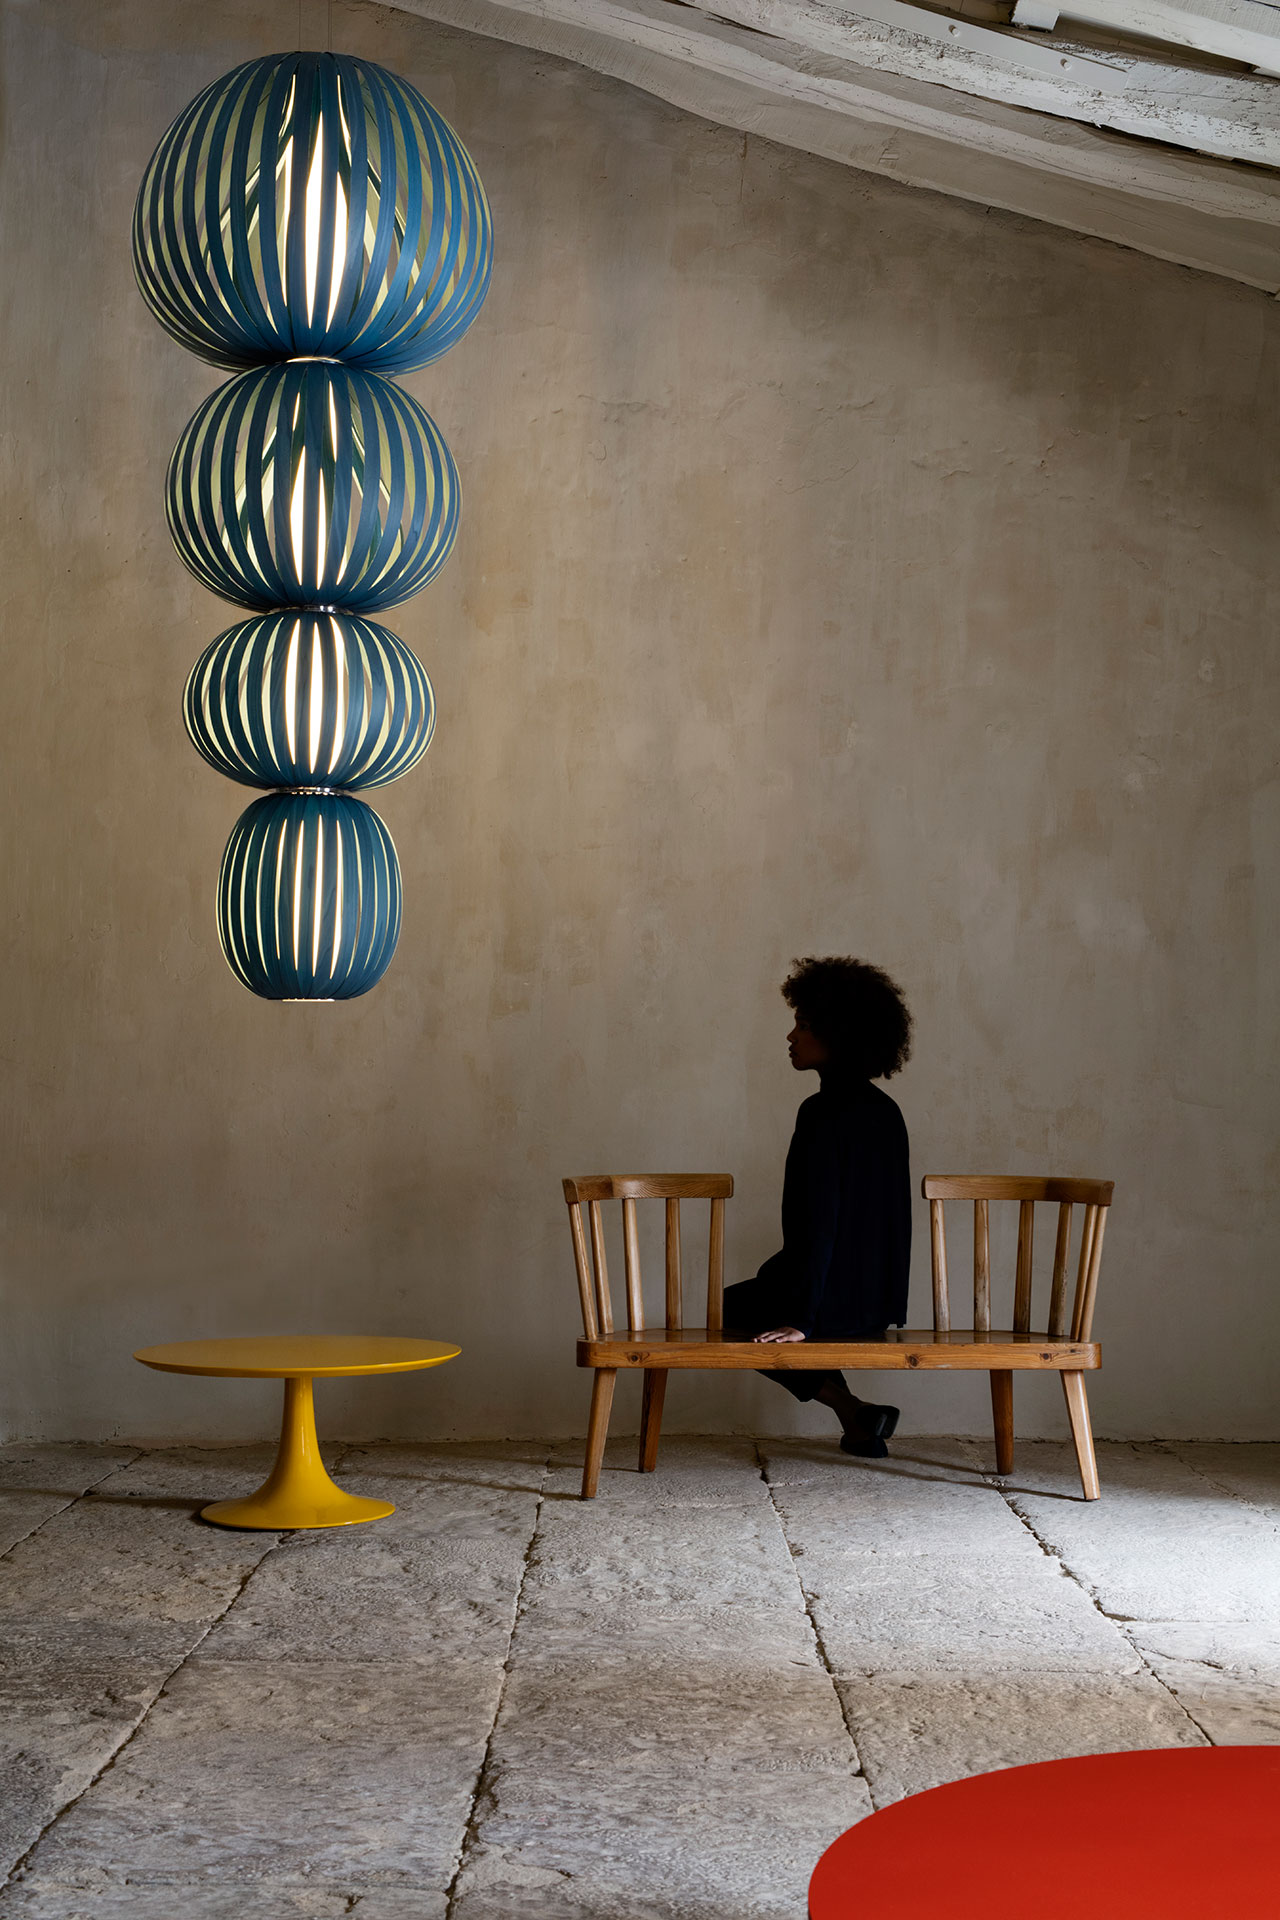 Totem pendant lamp by Burkhard Dämmer, from the Palacio de Casavells photo shoot. Photo by Klunderbie.